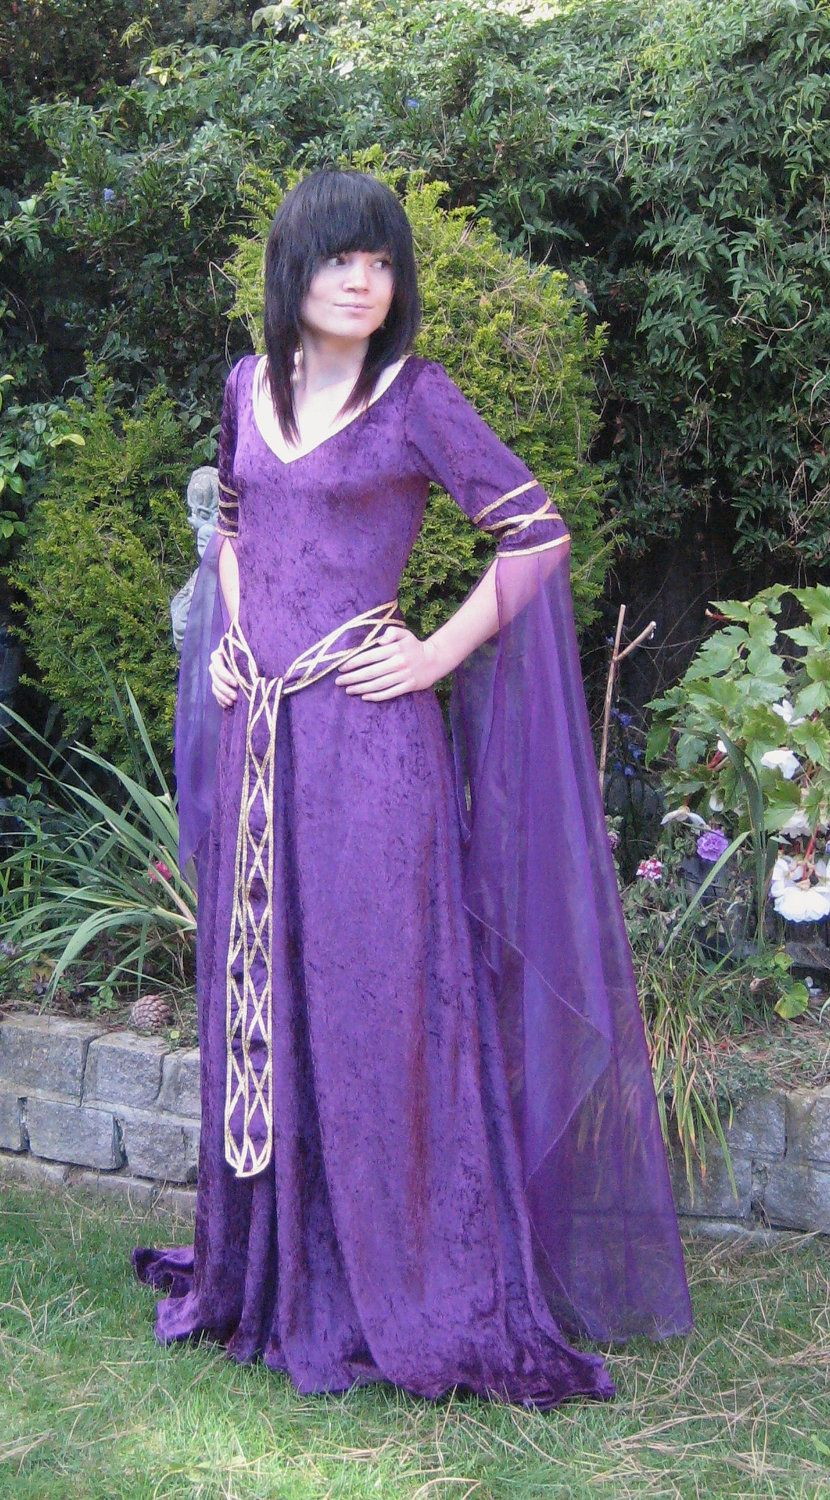 elvish wedding dress Eve a Celtic Elvish Medieval Pagan Wedding Gown with Applique Decoration